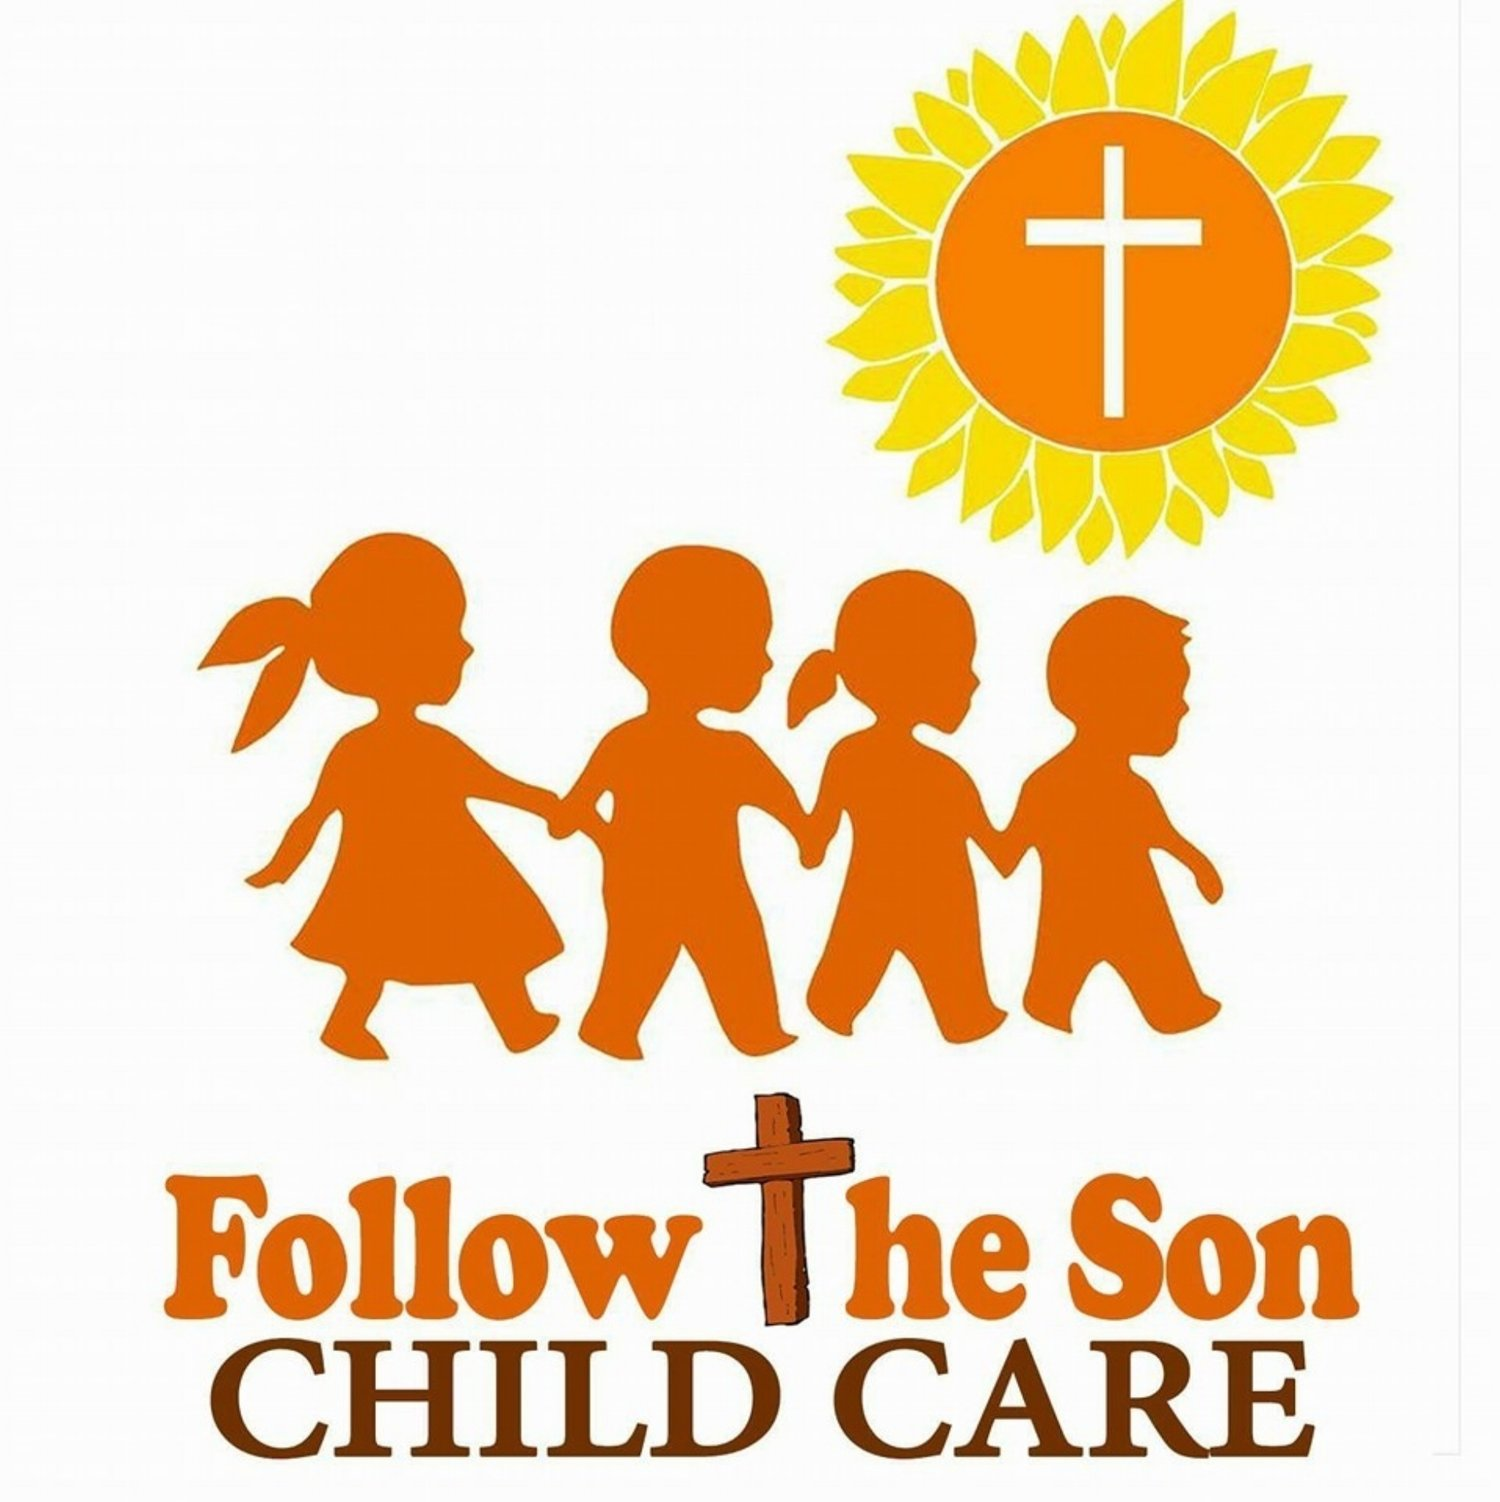 Follow the Son Child Care